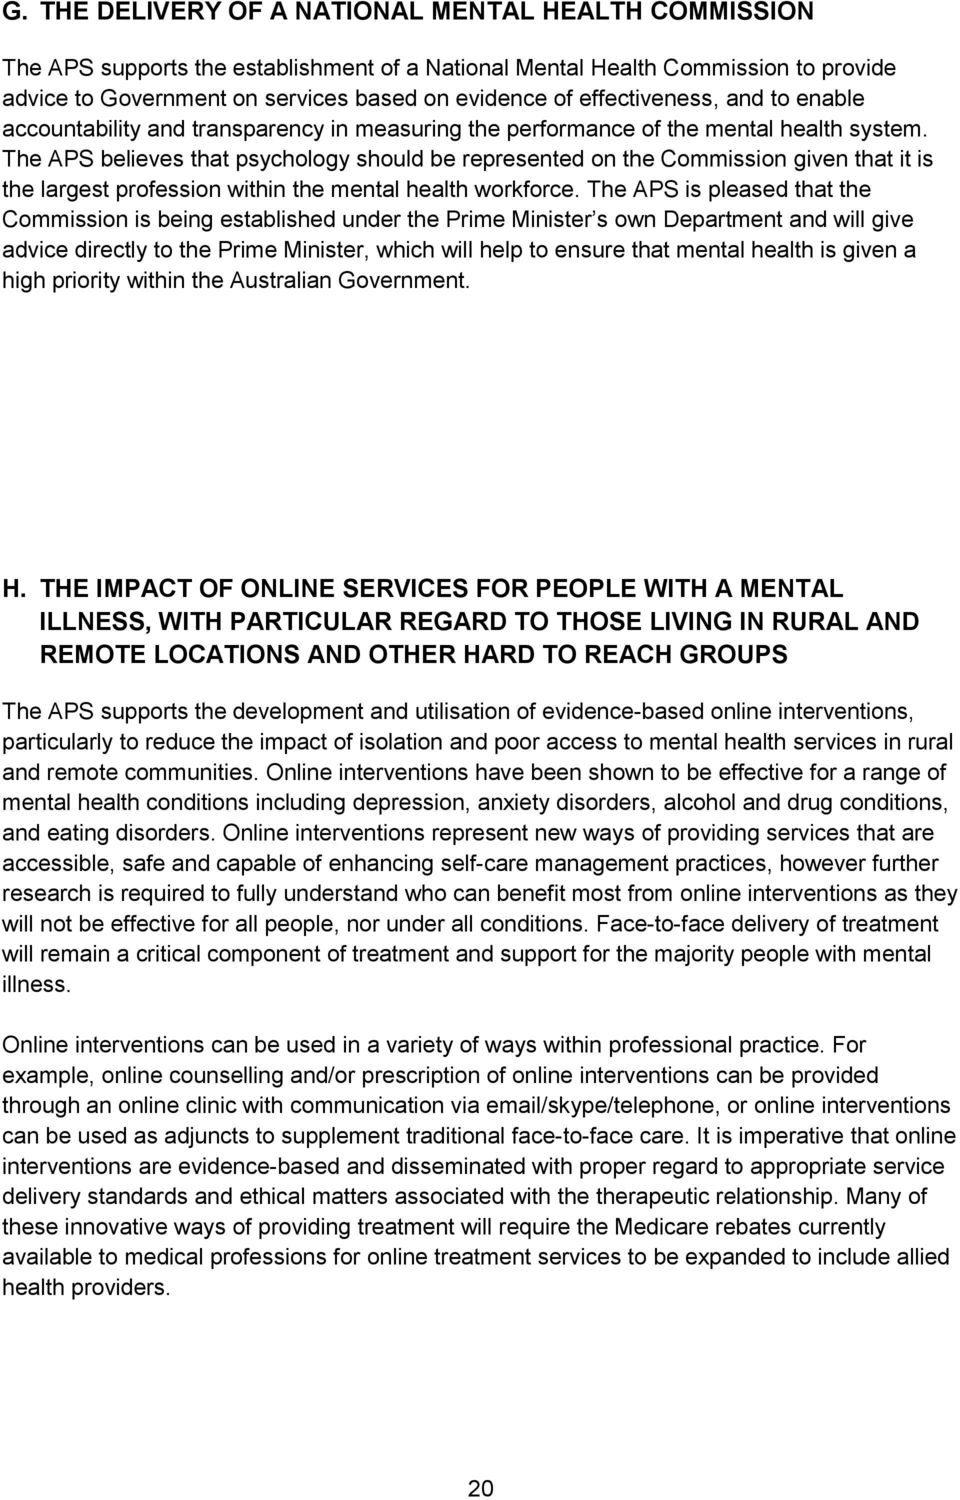 The APS believes that psychology should be represented on the Commission given that it is the largest profession within the mental health workforce.